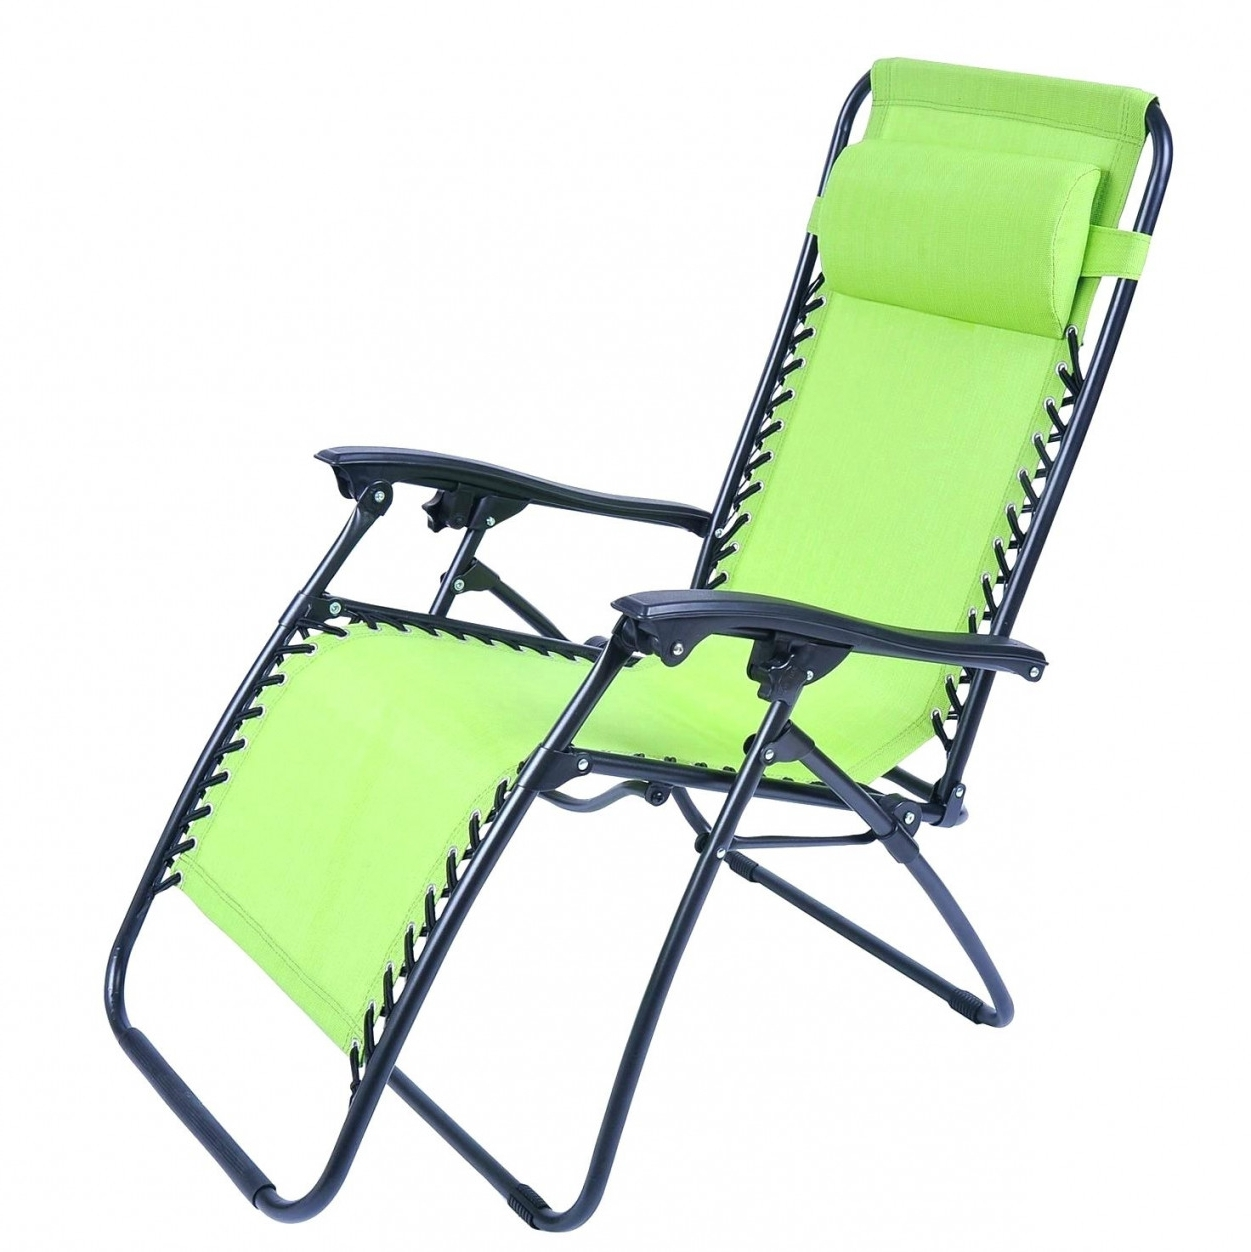 Cheap Folding Chaise Lounge Chairs Outdoor Beach Chair Beach In Most Popular Cheap Folding Chaise Lounge Chairs For Outdoor (View 4 of 15)